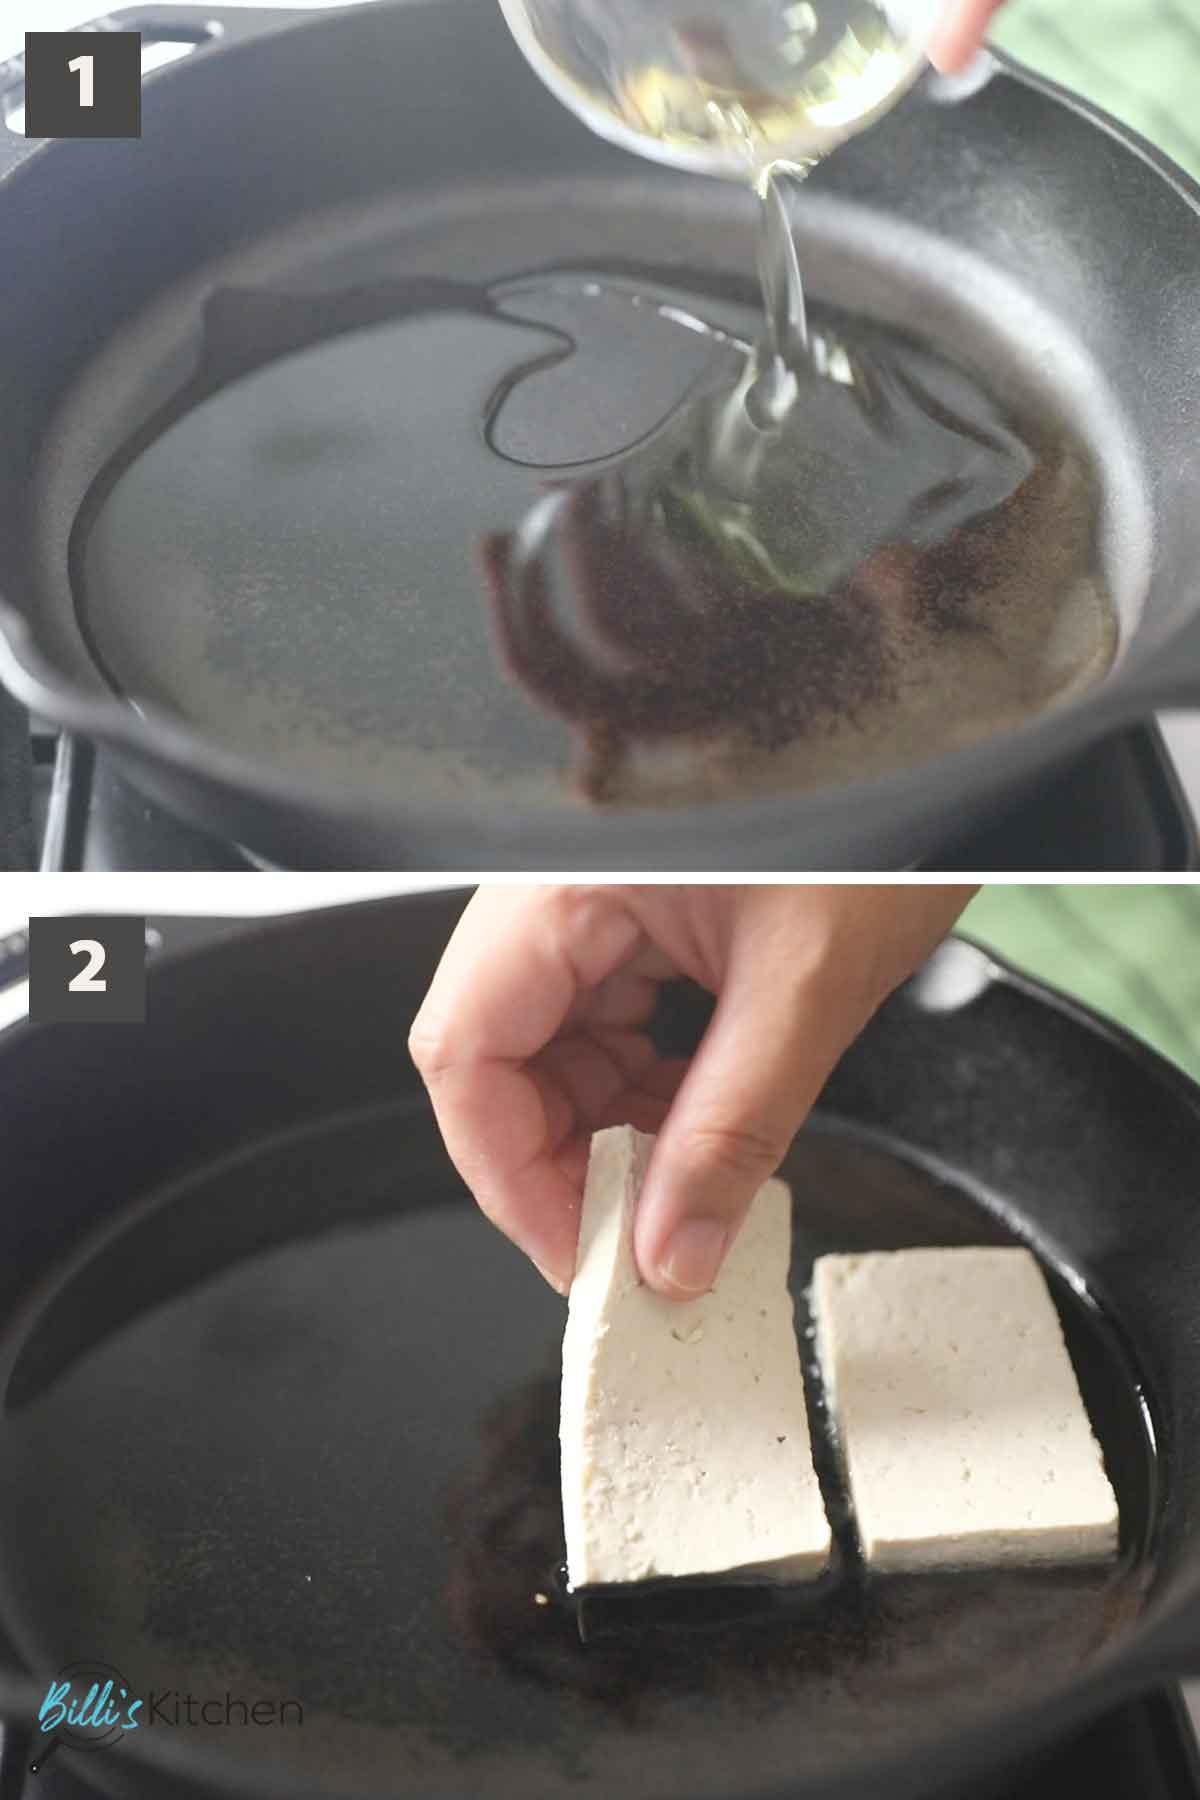 First part of a collage of images showing the step by step process on how to prepare crispy tofu.